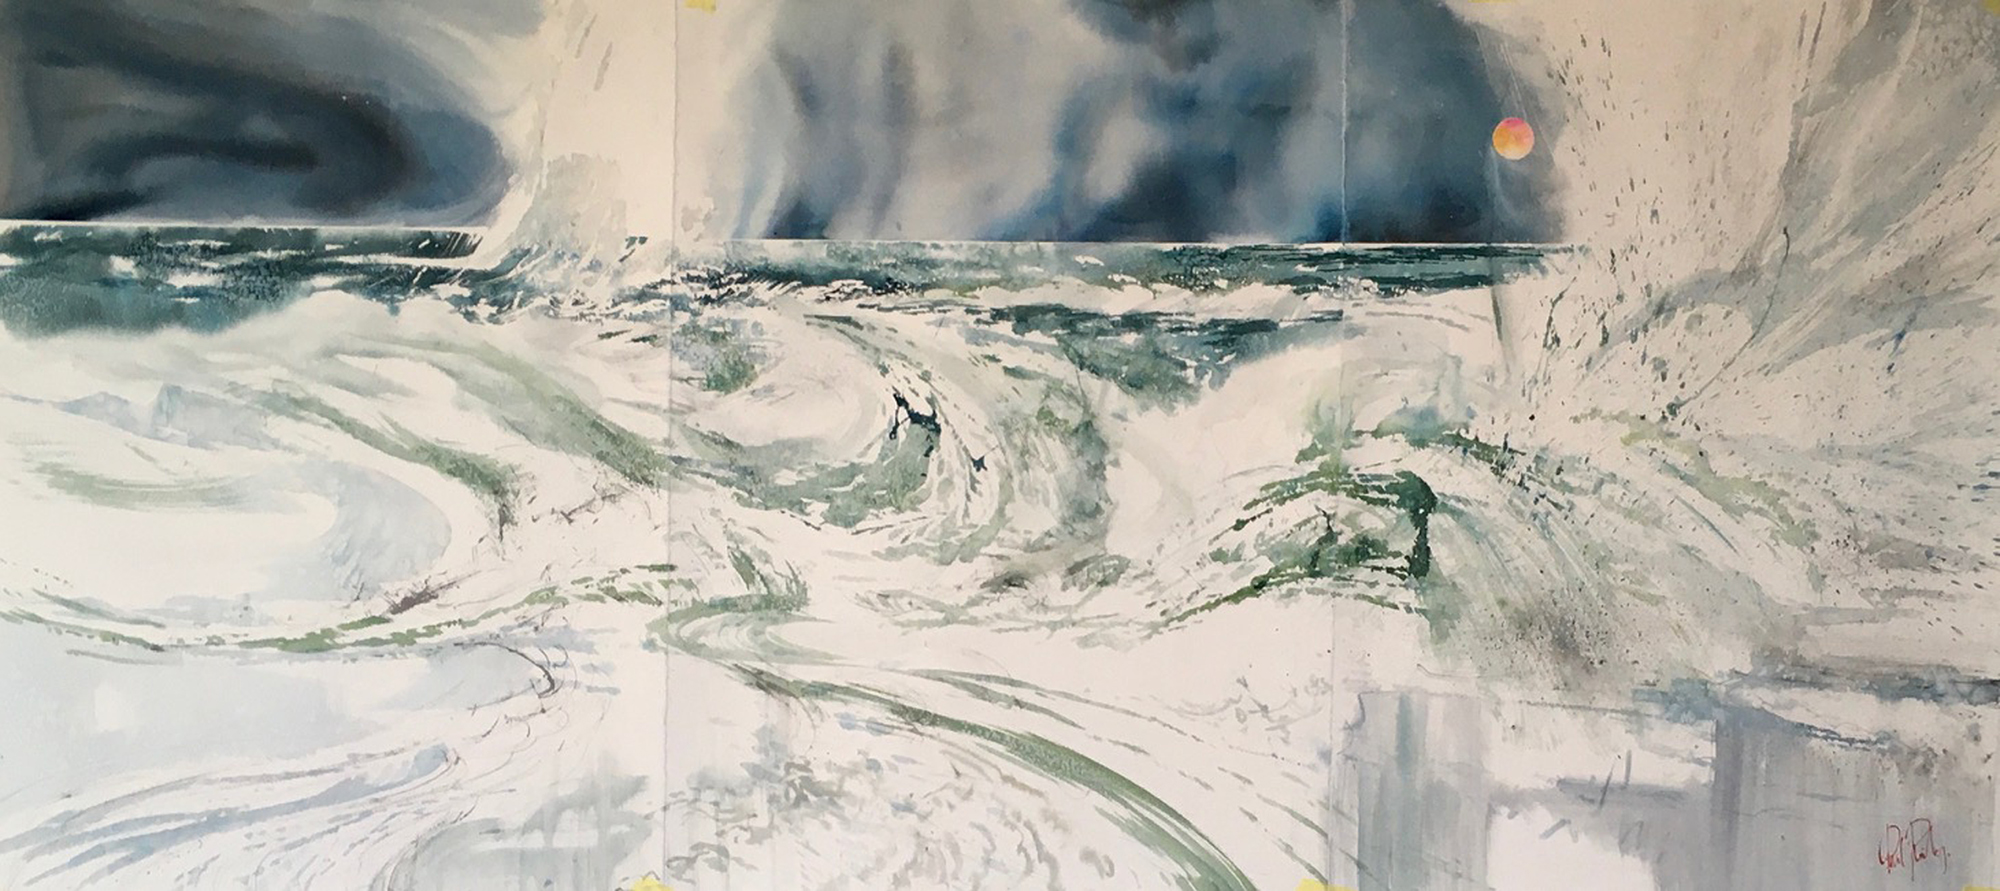 Sea Spray 76 x 1750 cms